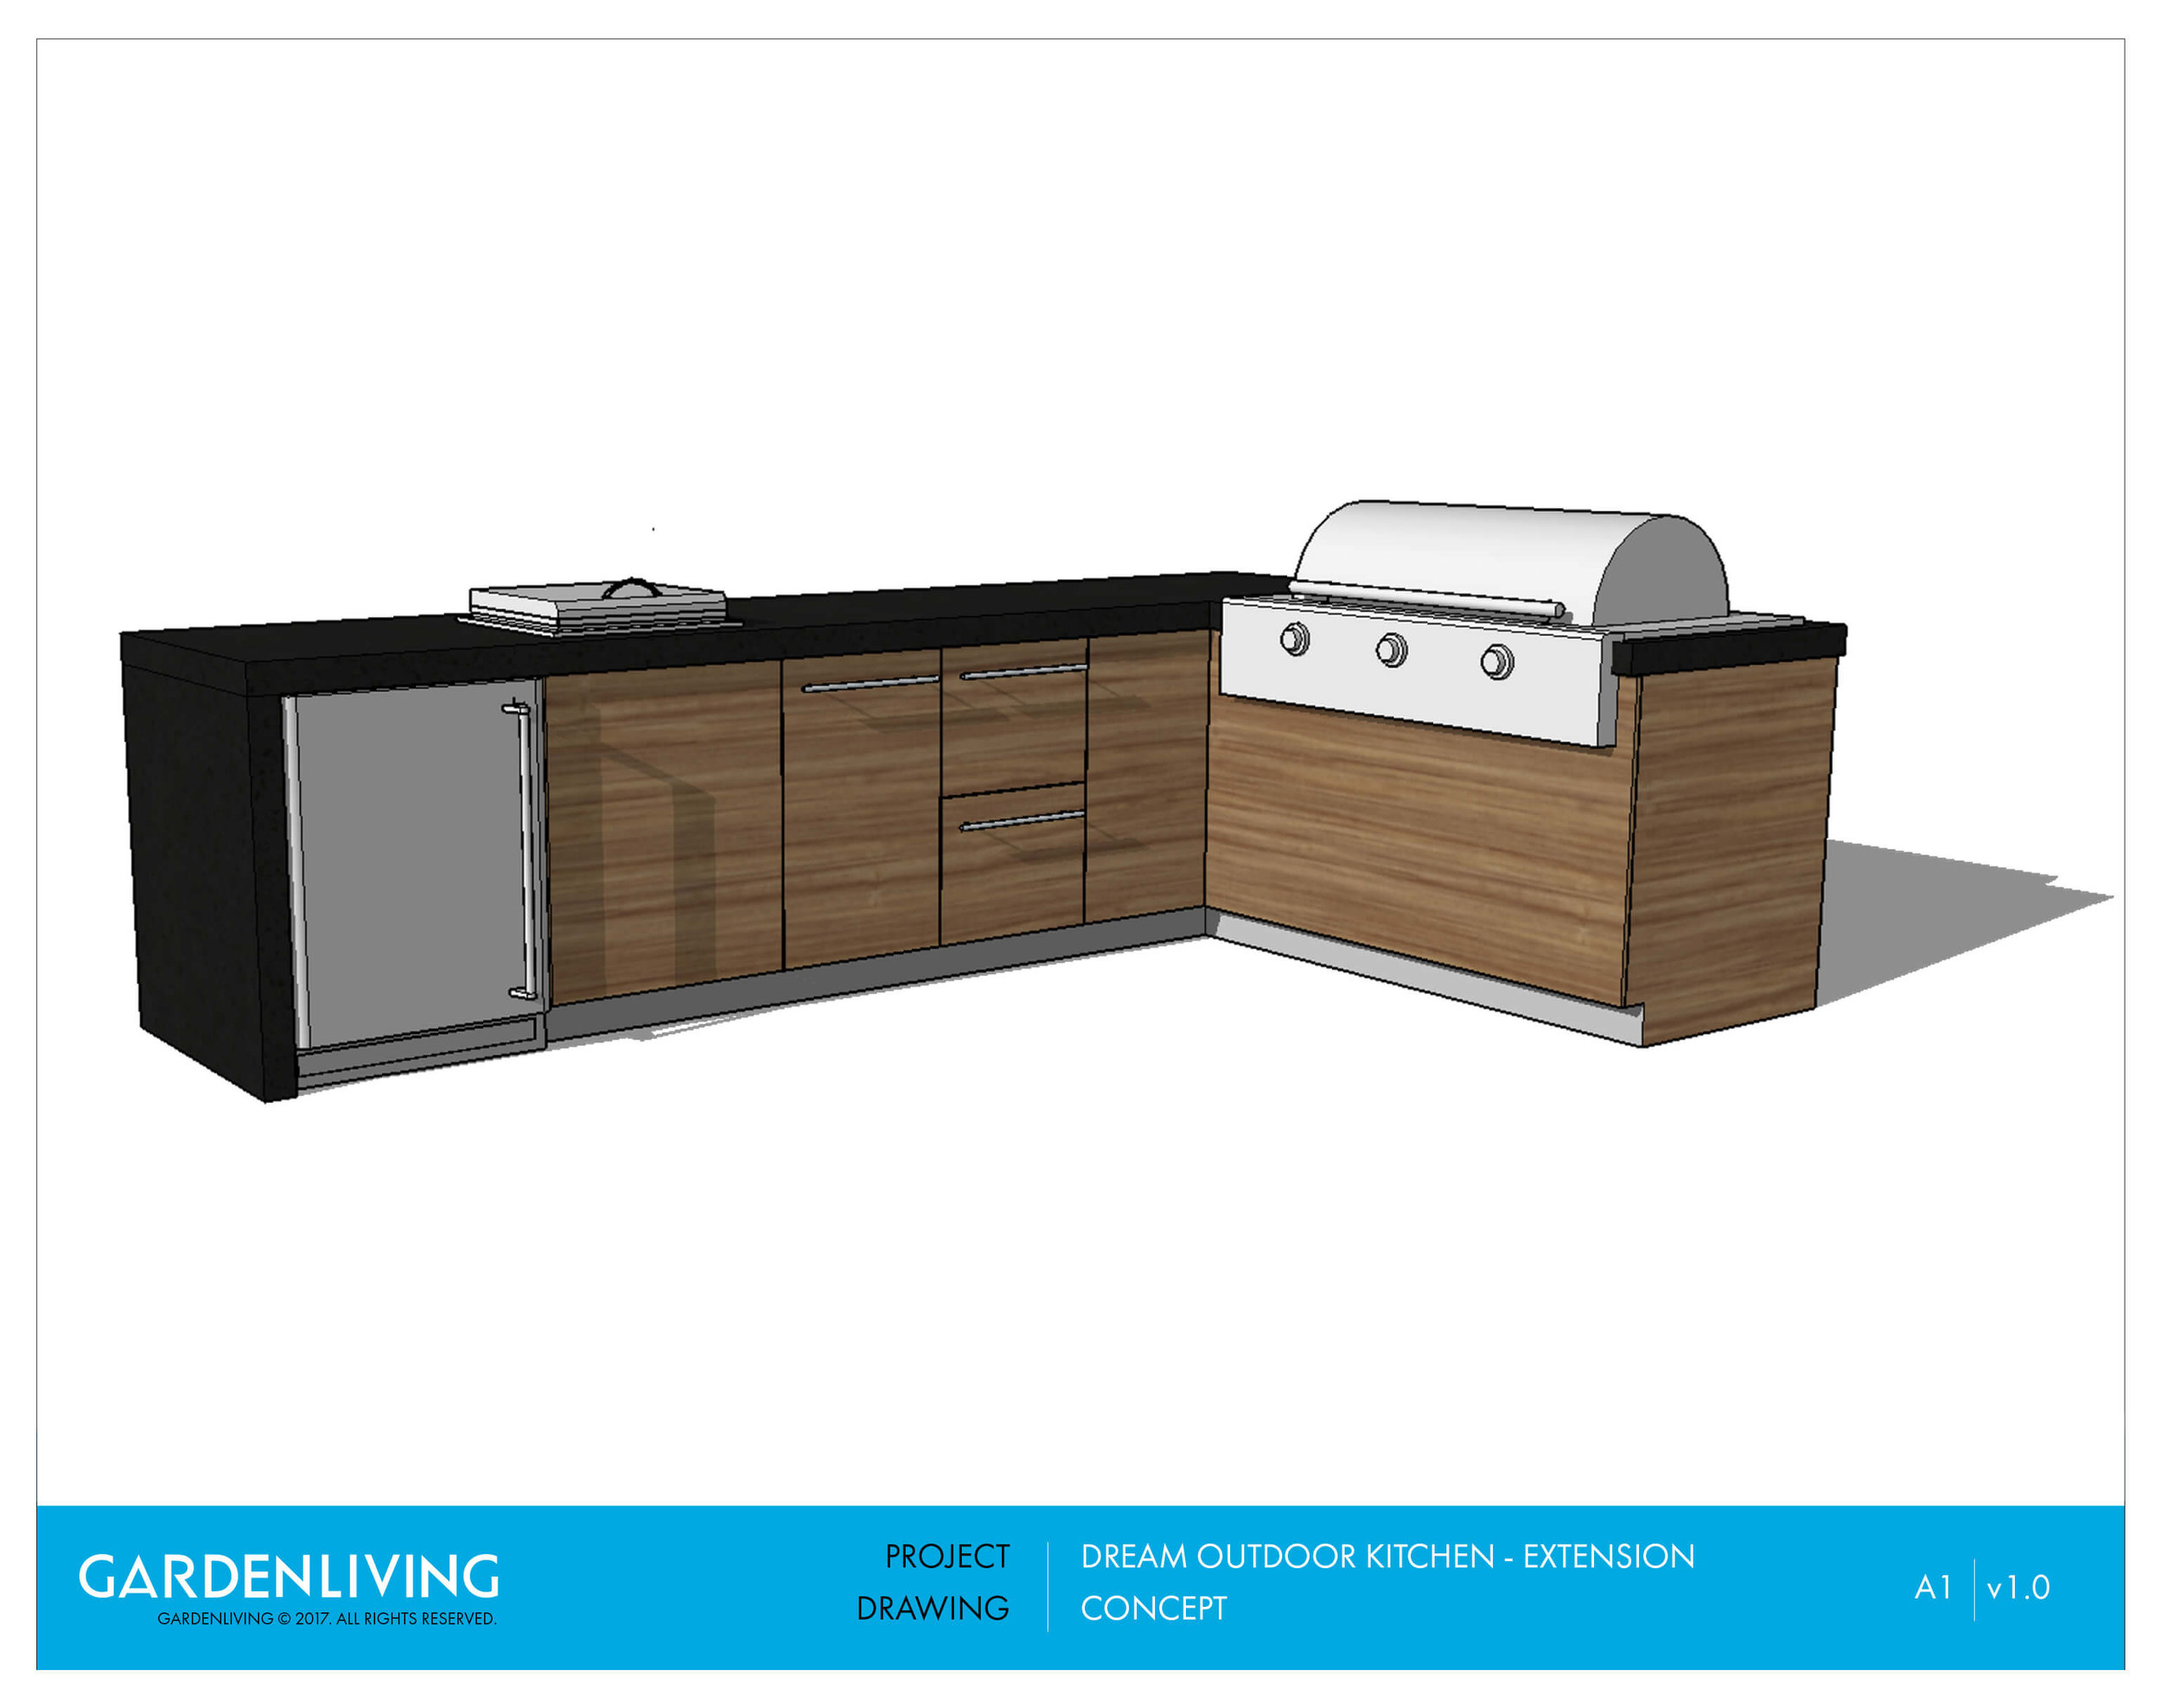 Outdoor Kitchen Poolscape - Concept Render 1.jpg